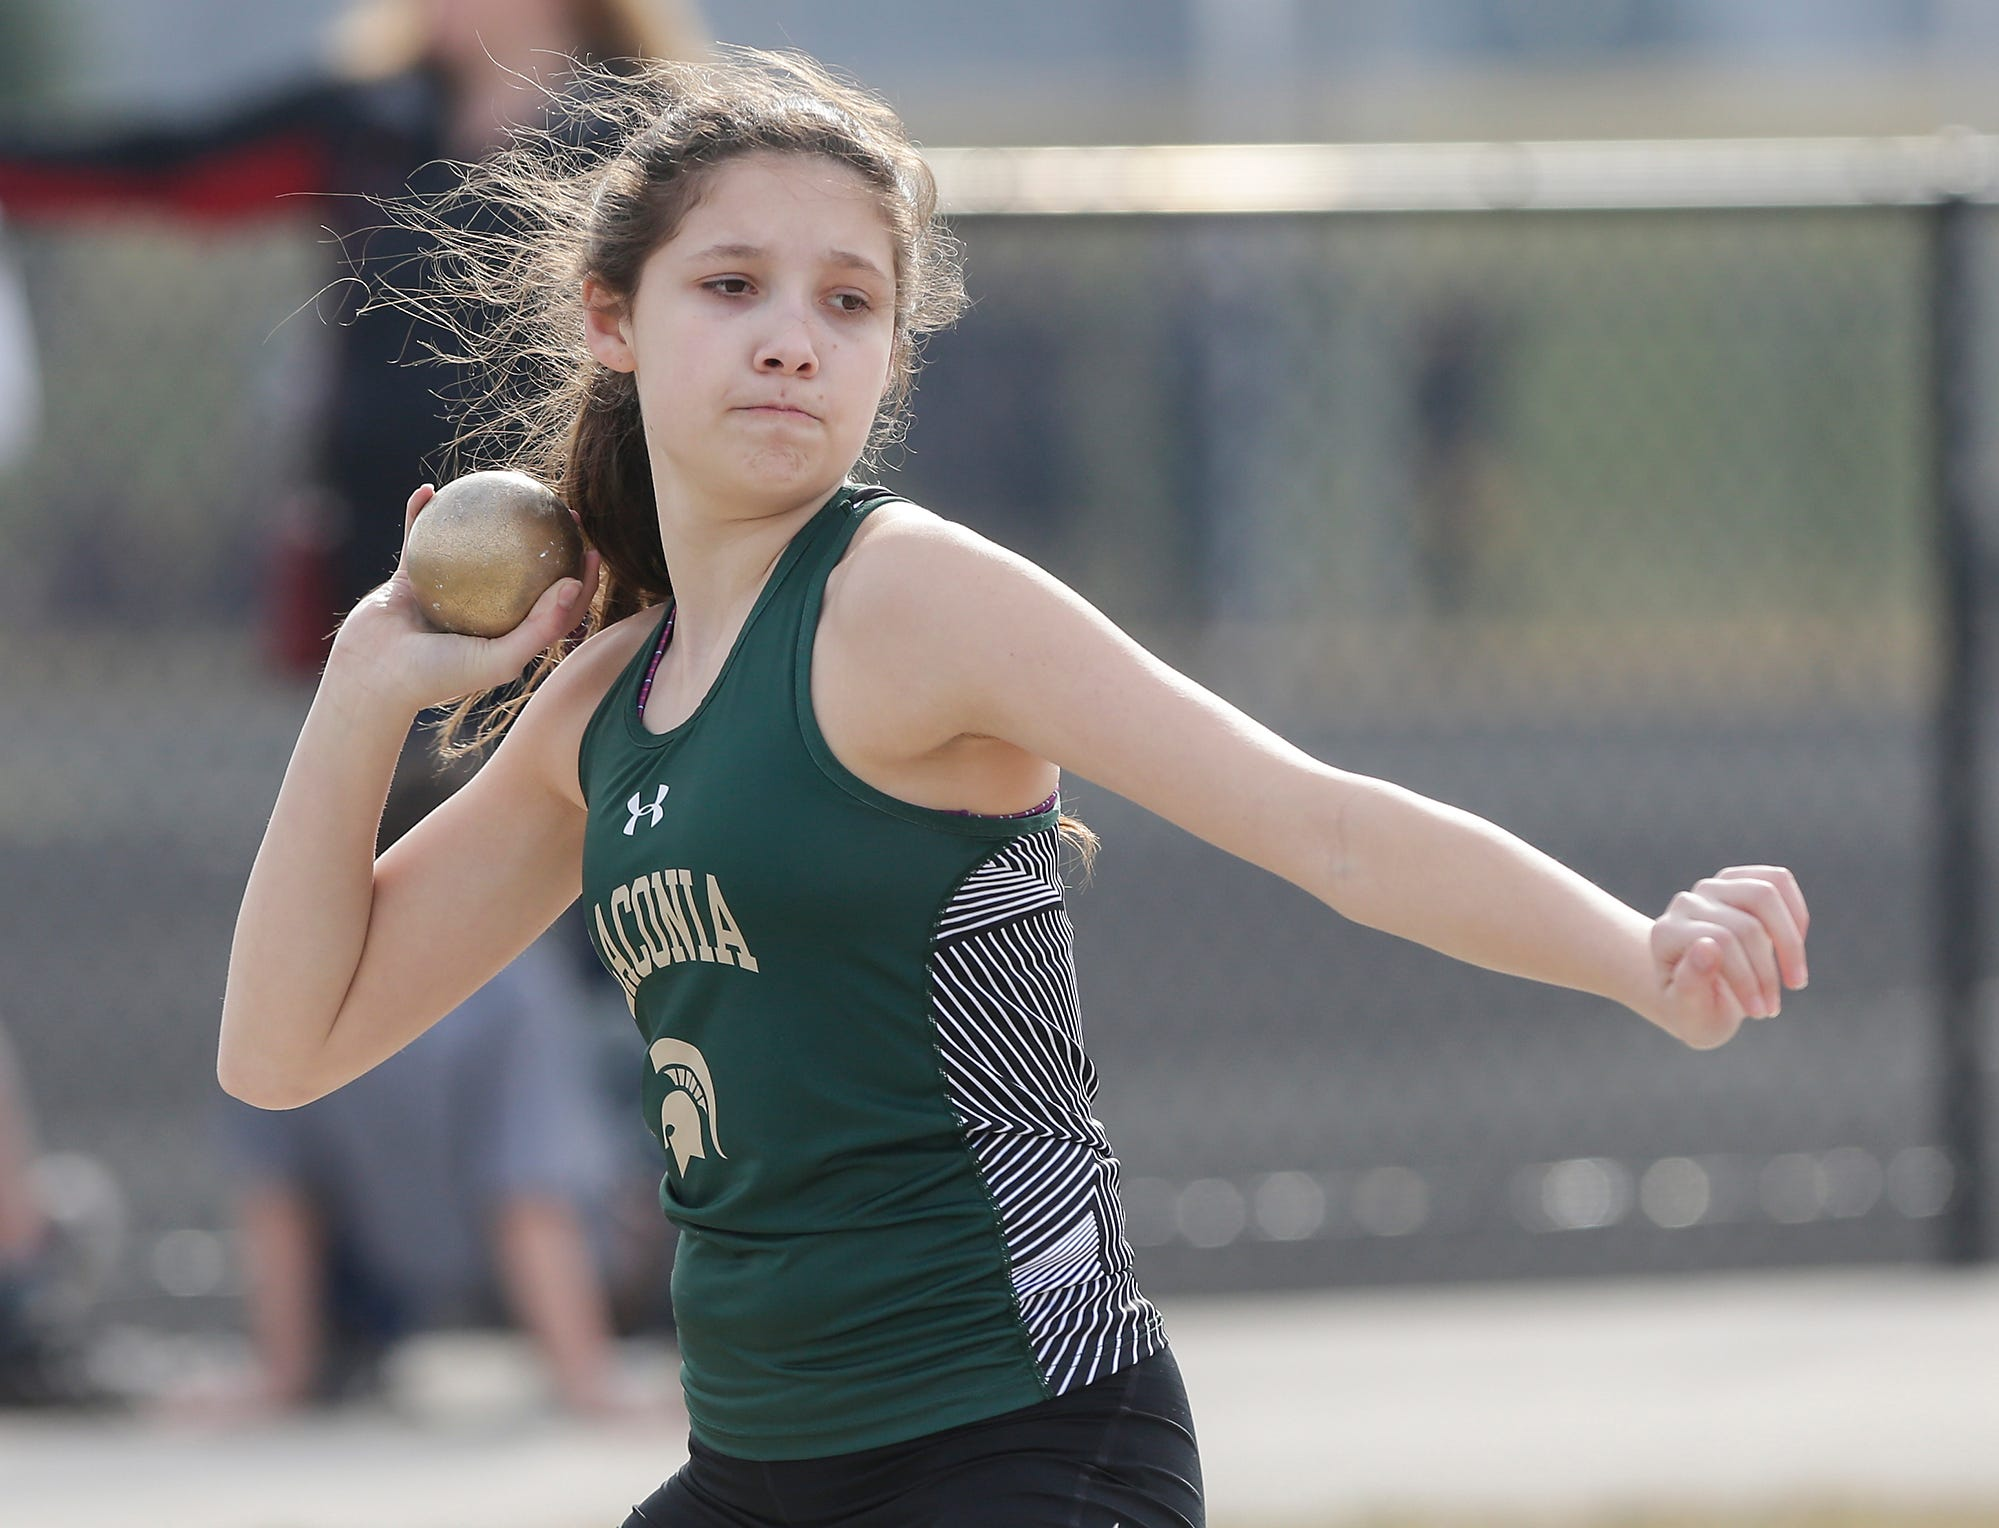 Laconia High School's Jayda Janeczko takes part in the shot putt Tuesday, April 16, 2019 at North Fond du Lac High School in North Fond du Lac, Wis. Doug Raflik/USA TODAY NETWORK-Wisconsin